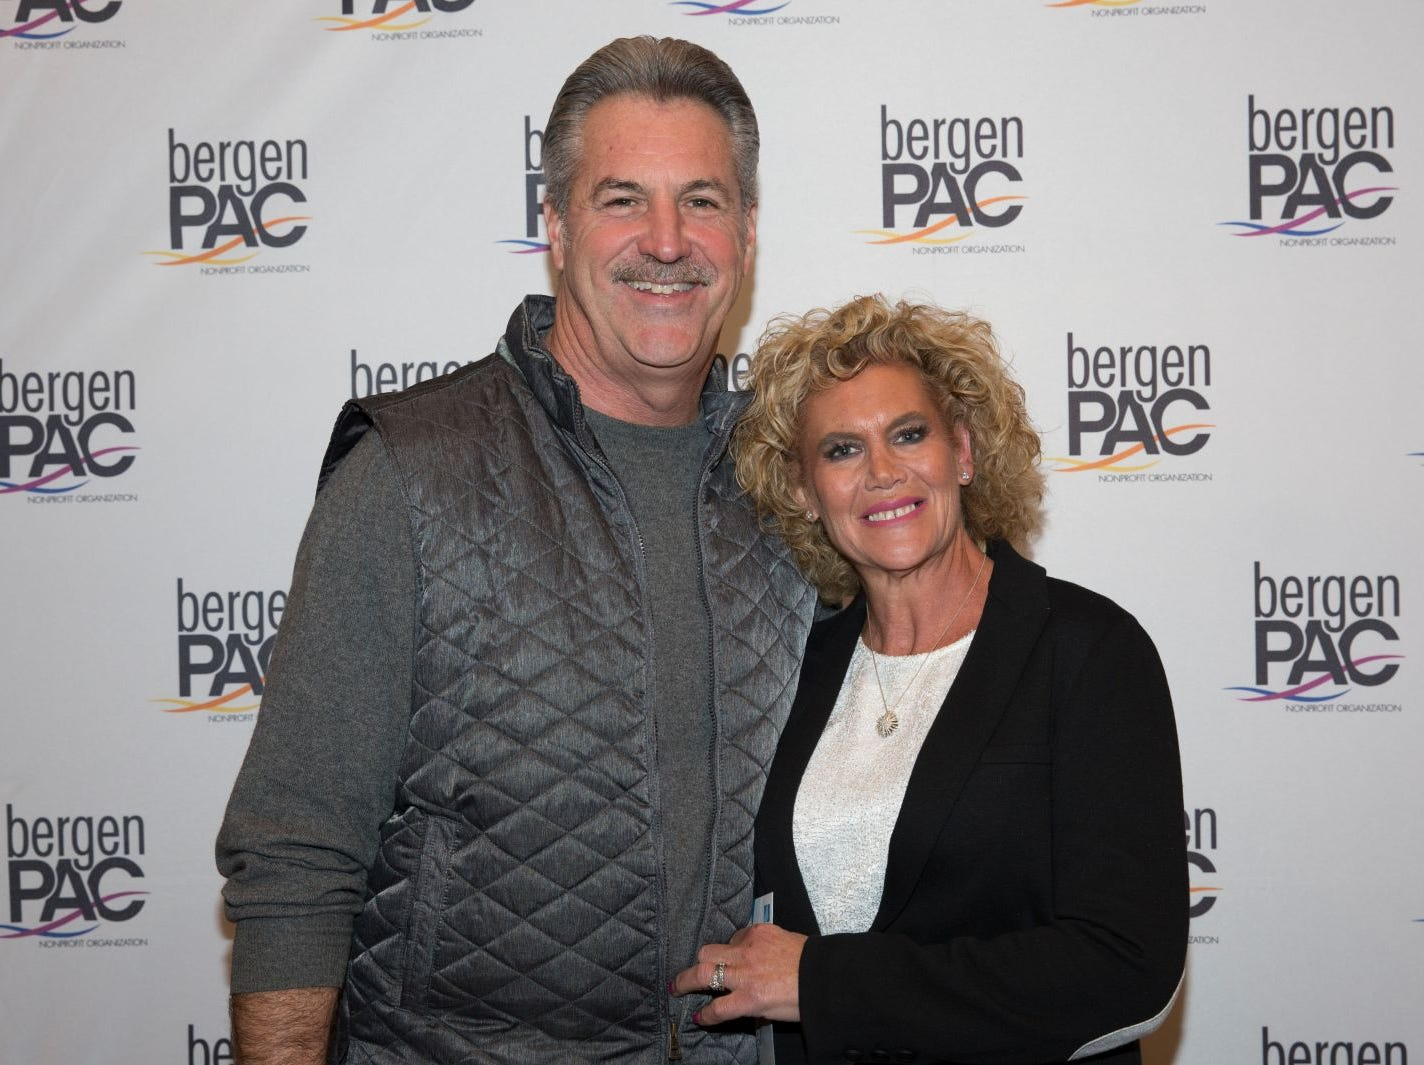 Bill and Barbara Meile. BergenPAC held its annual fall gala featuring John Fogerty in Englewood. This year's honoree was Fernando Garip, from Wilmington Trust and M&T Bank. 11/08/2018